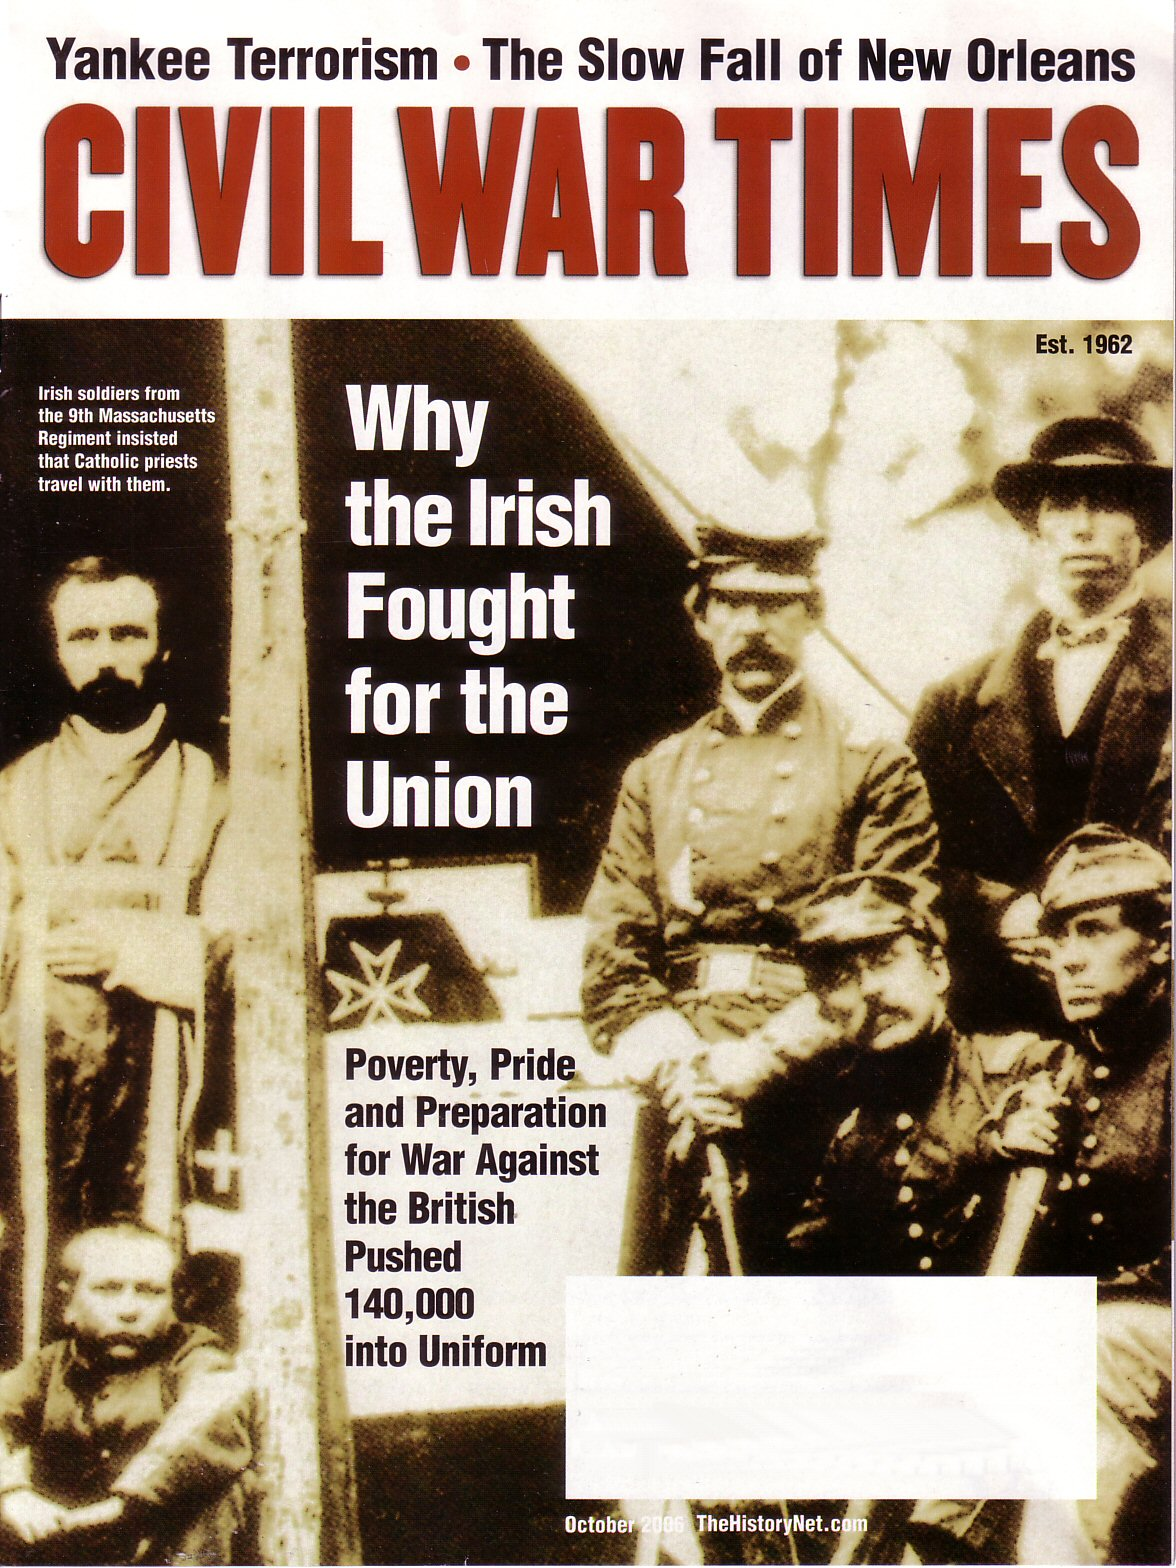 Civil War Times, Volume 45, Number 8 (October 2006)